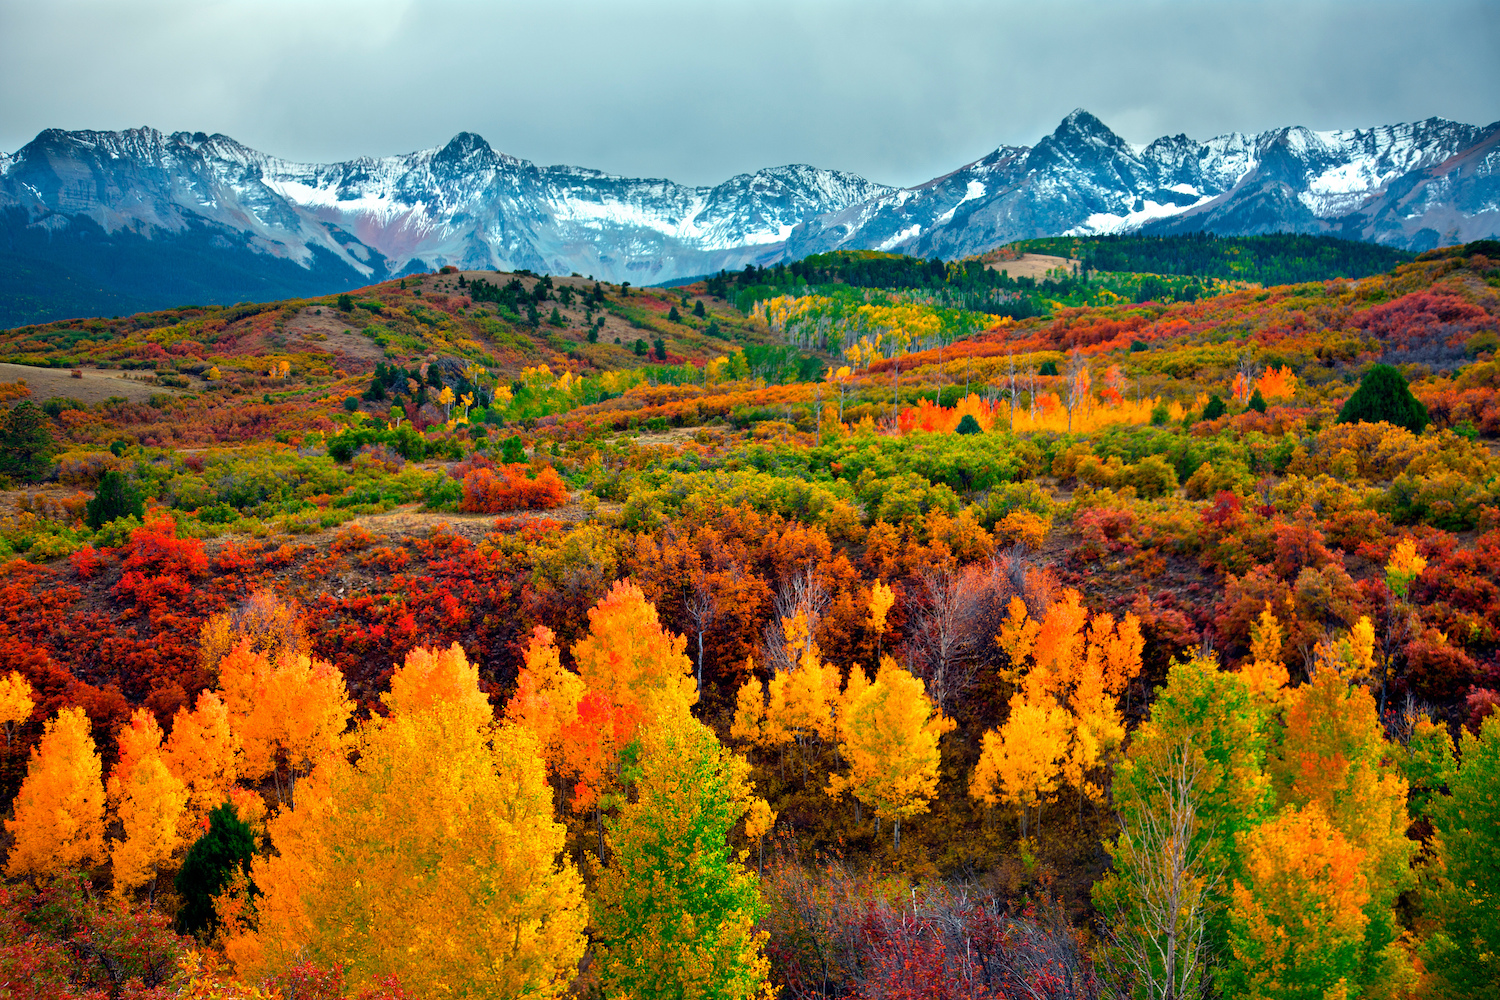 The Best Campgrounds for Fairytale Fall Foliage